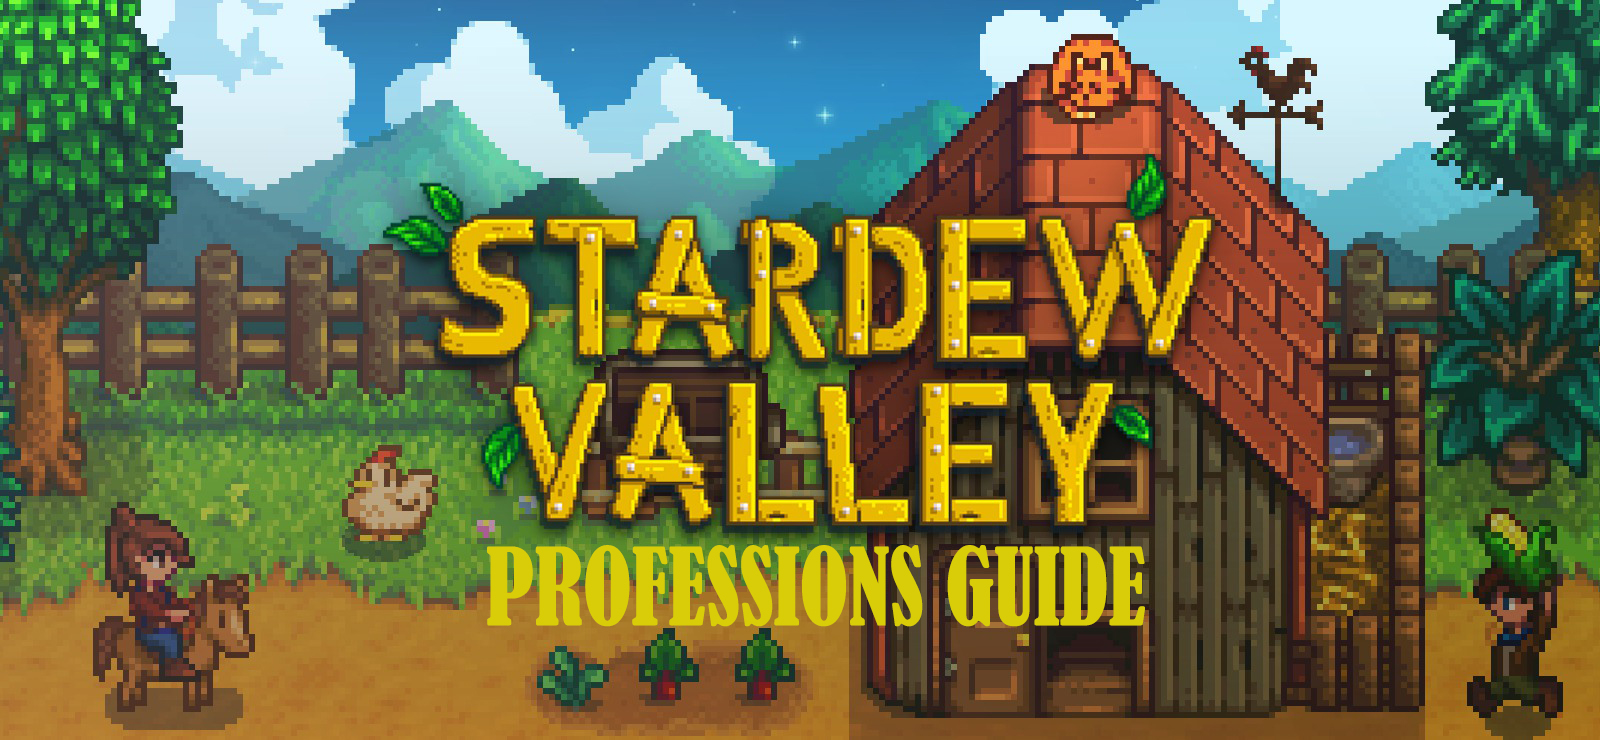 stardew valley professions guide